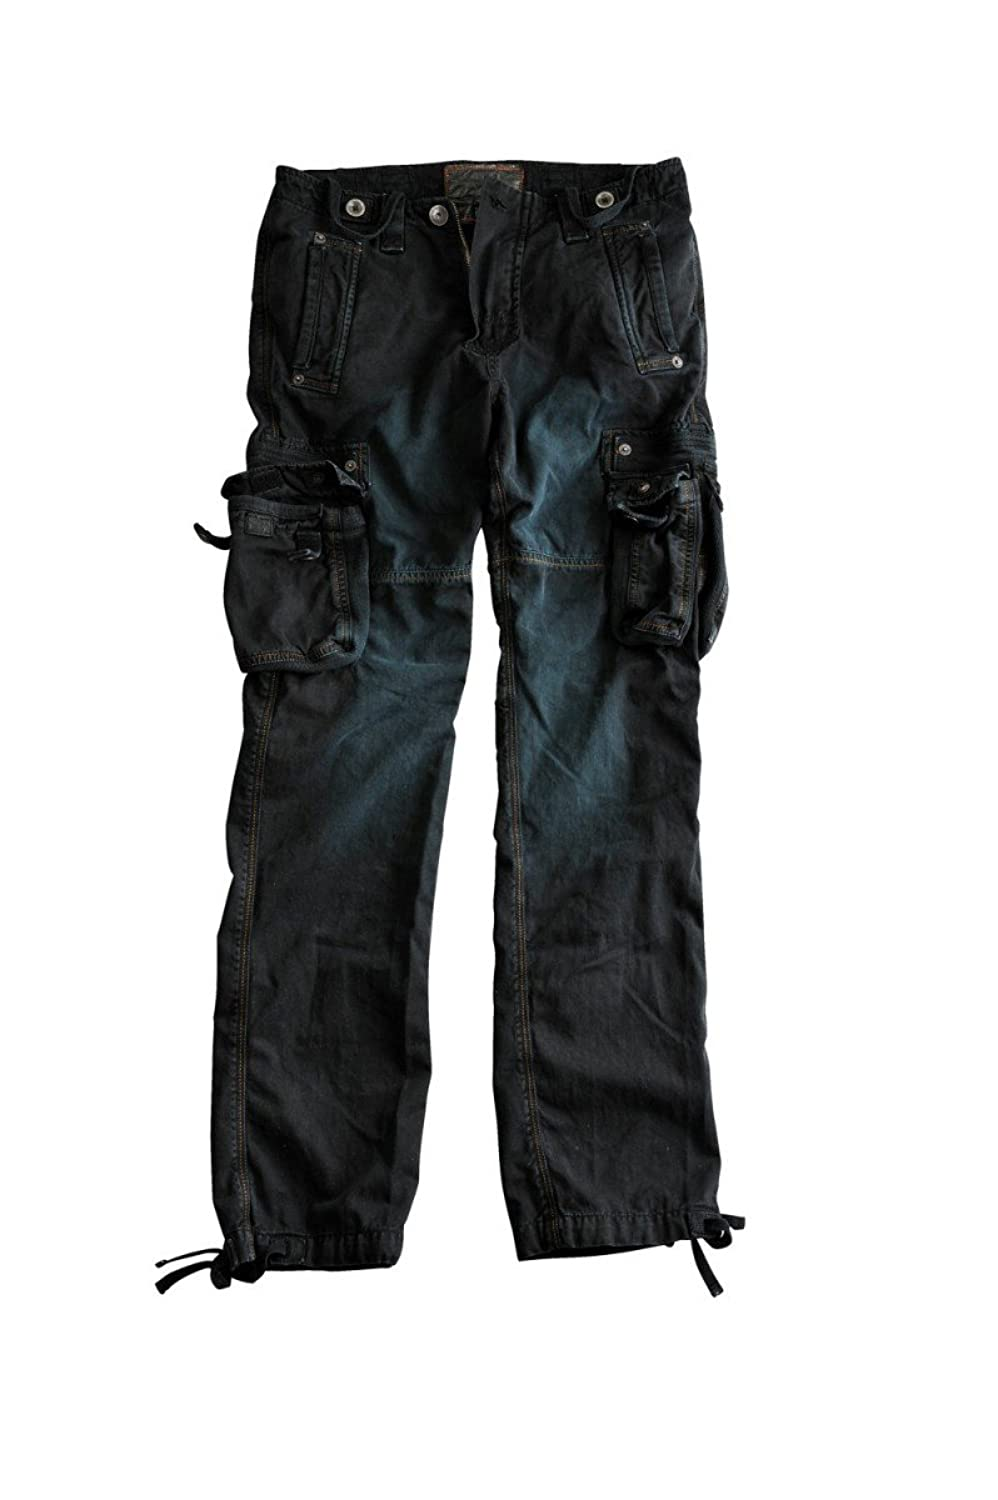 Alpha Industries Tough Cargo Pant Wsh. Black